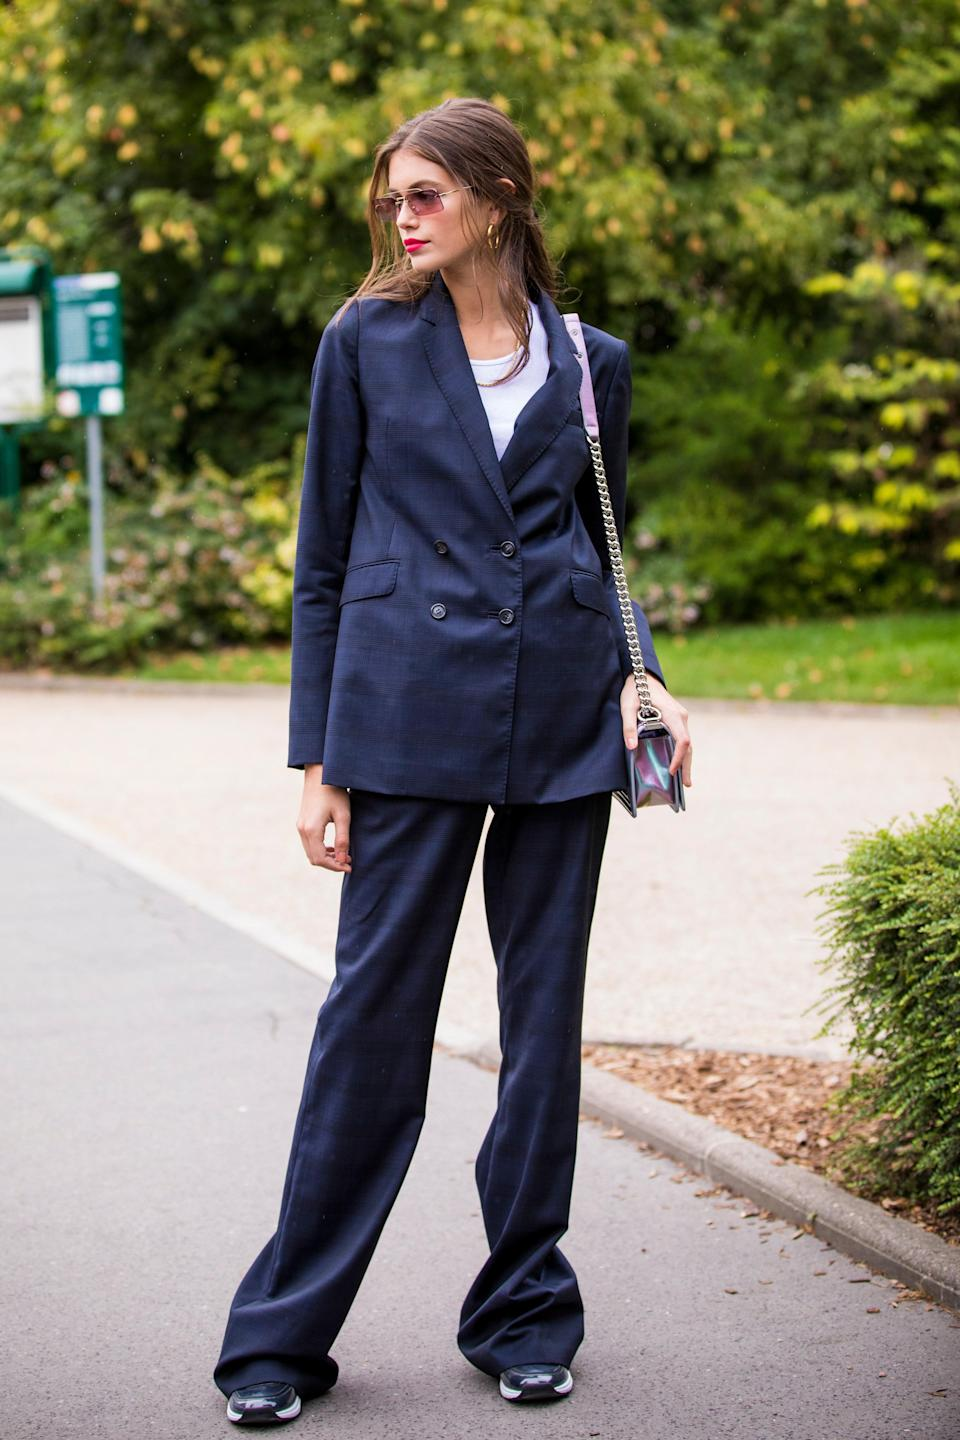 Oversized suits, sneakers and a red lip make for an unforgettable combo.